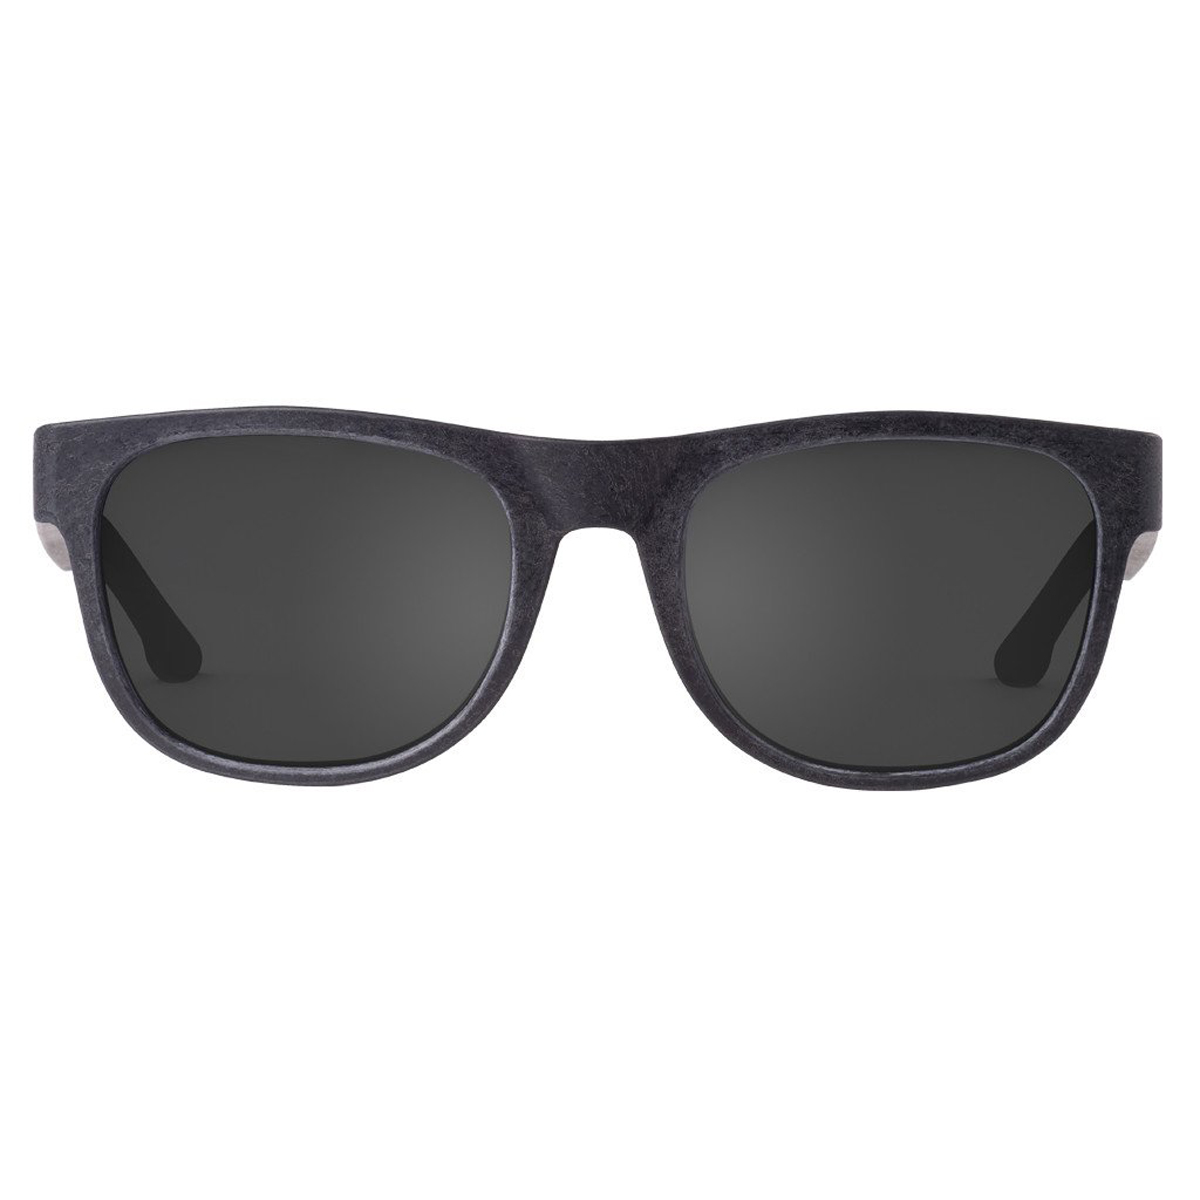 BUREO SUNGLASSES - THE YUCO GREY LENS